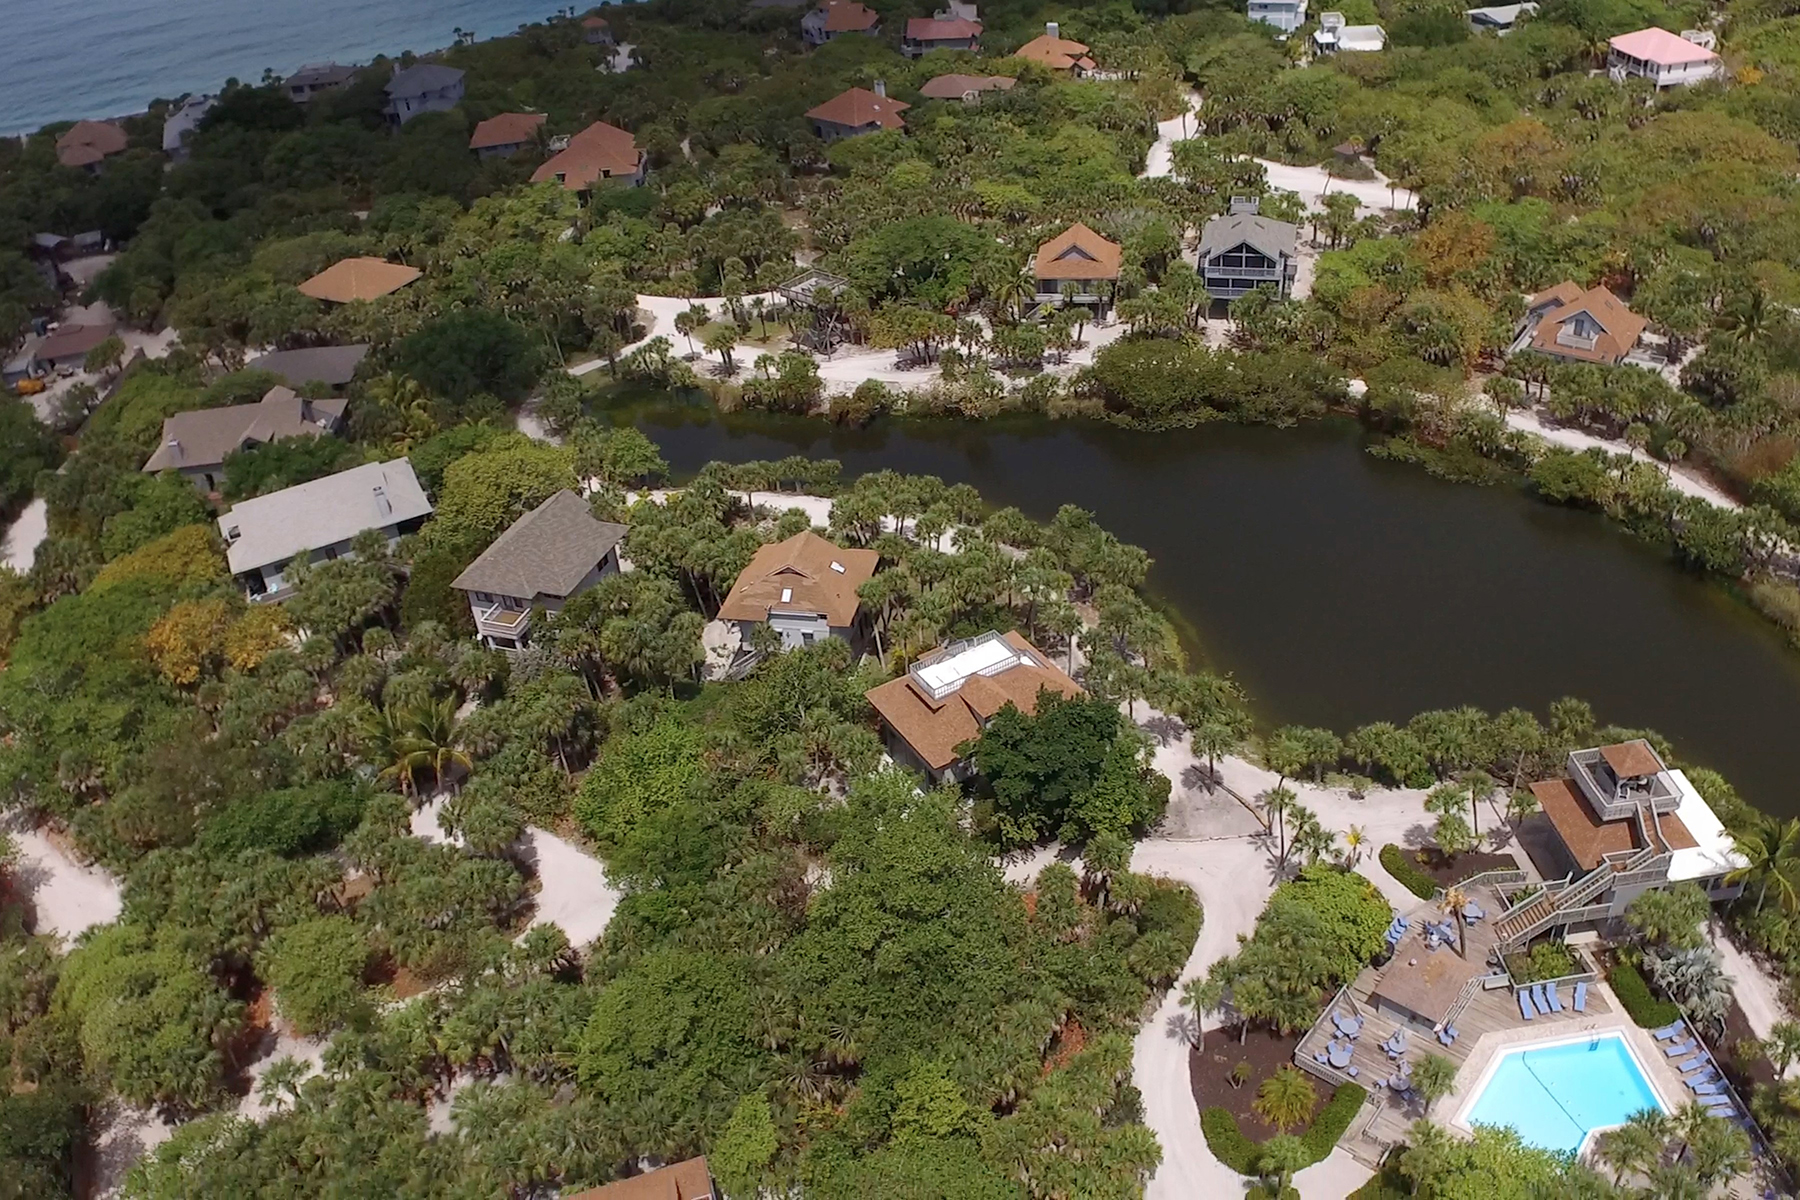 Land for Sale at NORTH CAPTIVA 4486 Hammock Ct, Captiva, Florida 33924 United States